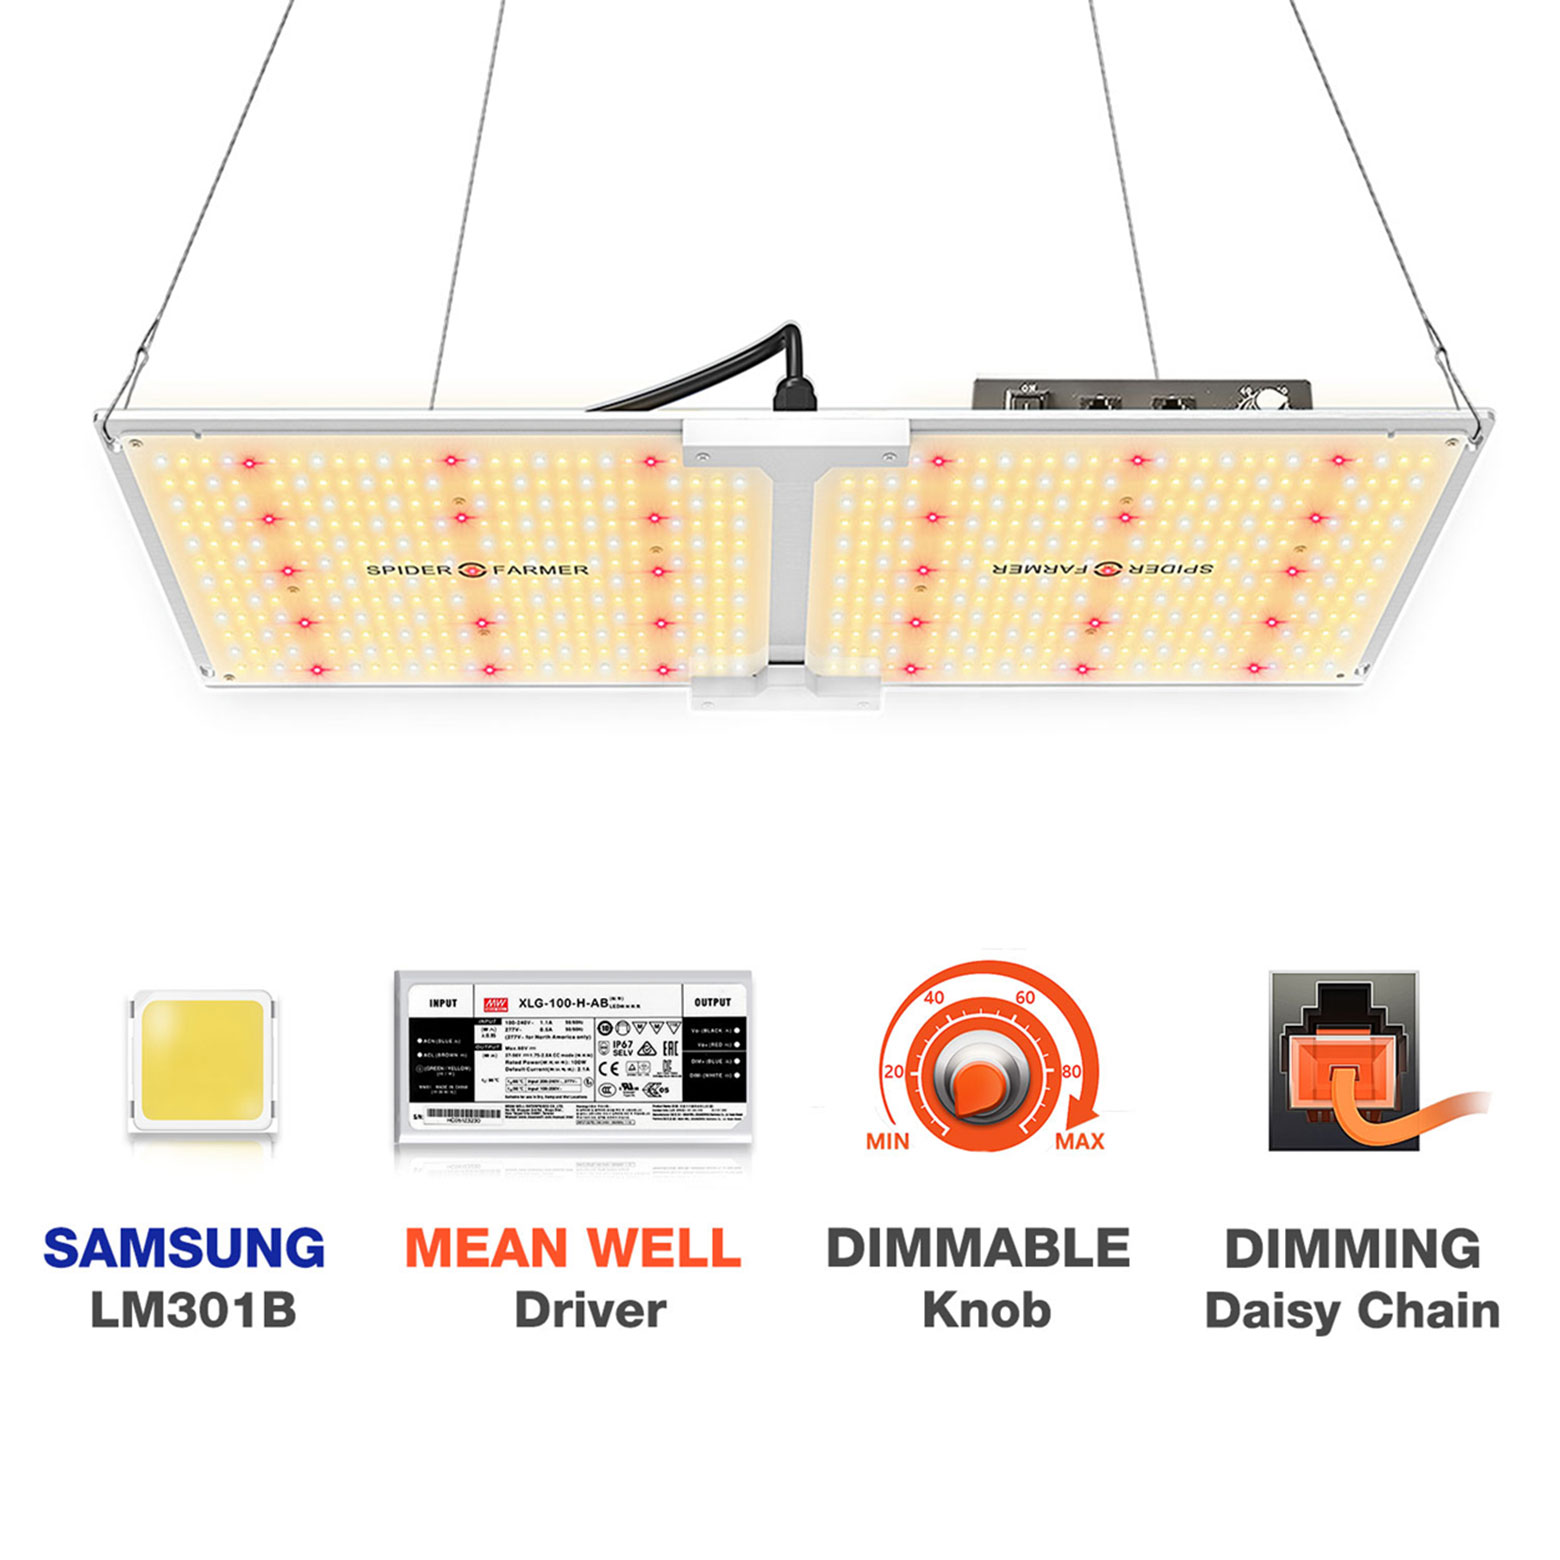 Spider Farmer Sf 2000 Led Grow Light 2x4 Ft Flower Compatible With Samsung Lm301b Diodes Meanwell Driver Dimmable Grow Lights Full Spectrum For Indoor Hydroponic Plants Veg Bloom 606pcs Leds Walmart Com